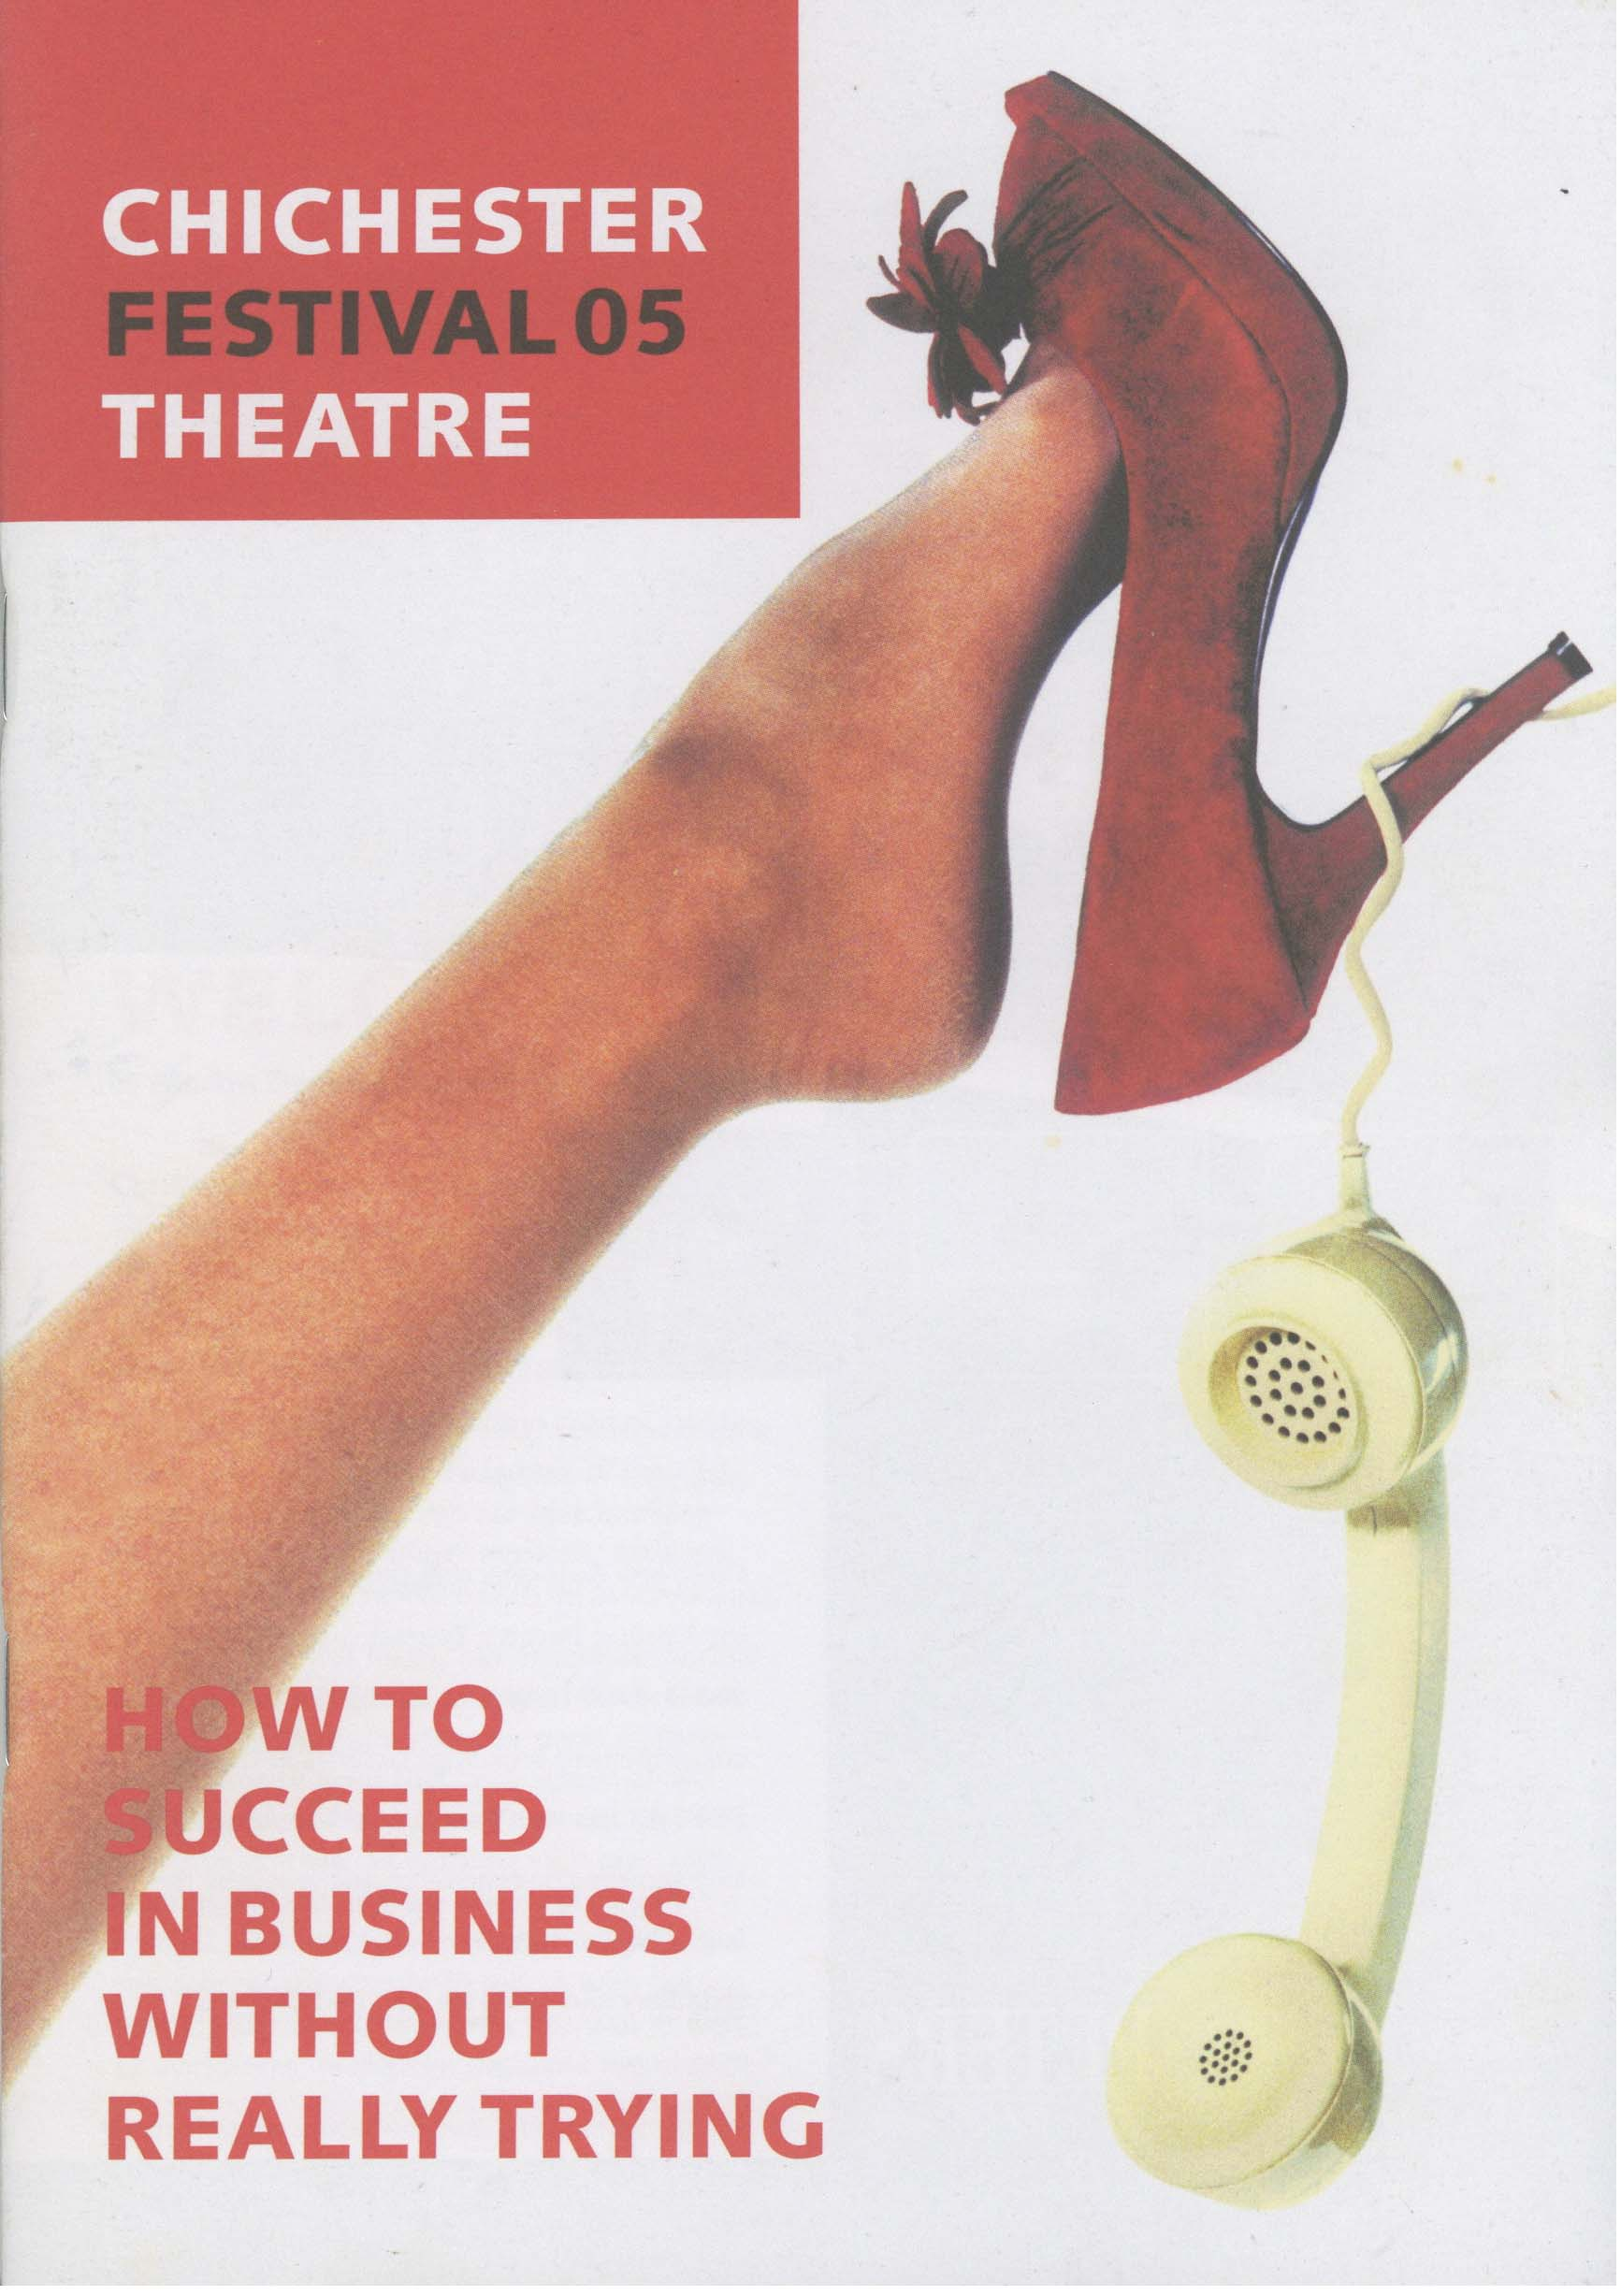 Programme - How to Succeed... - 2005 - 1 of 42